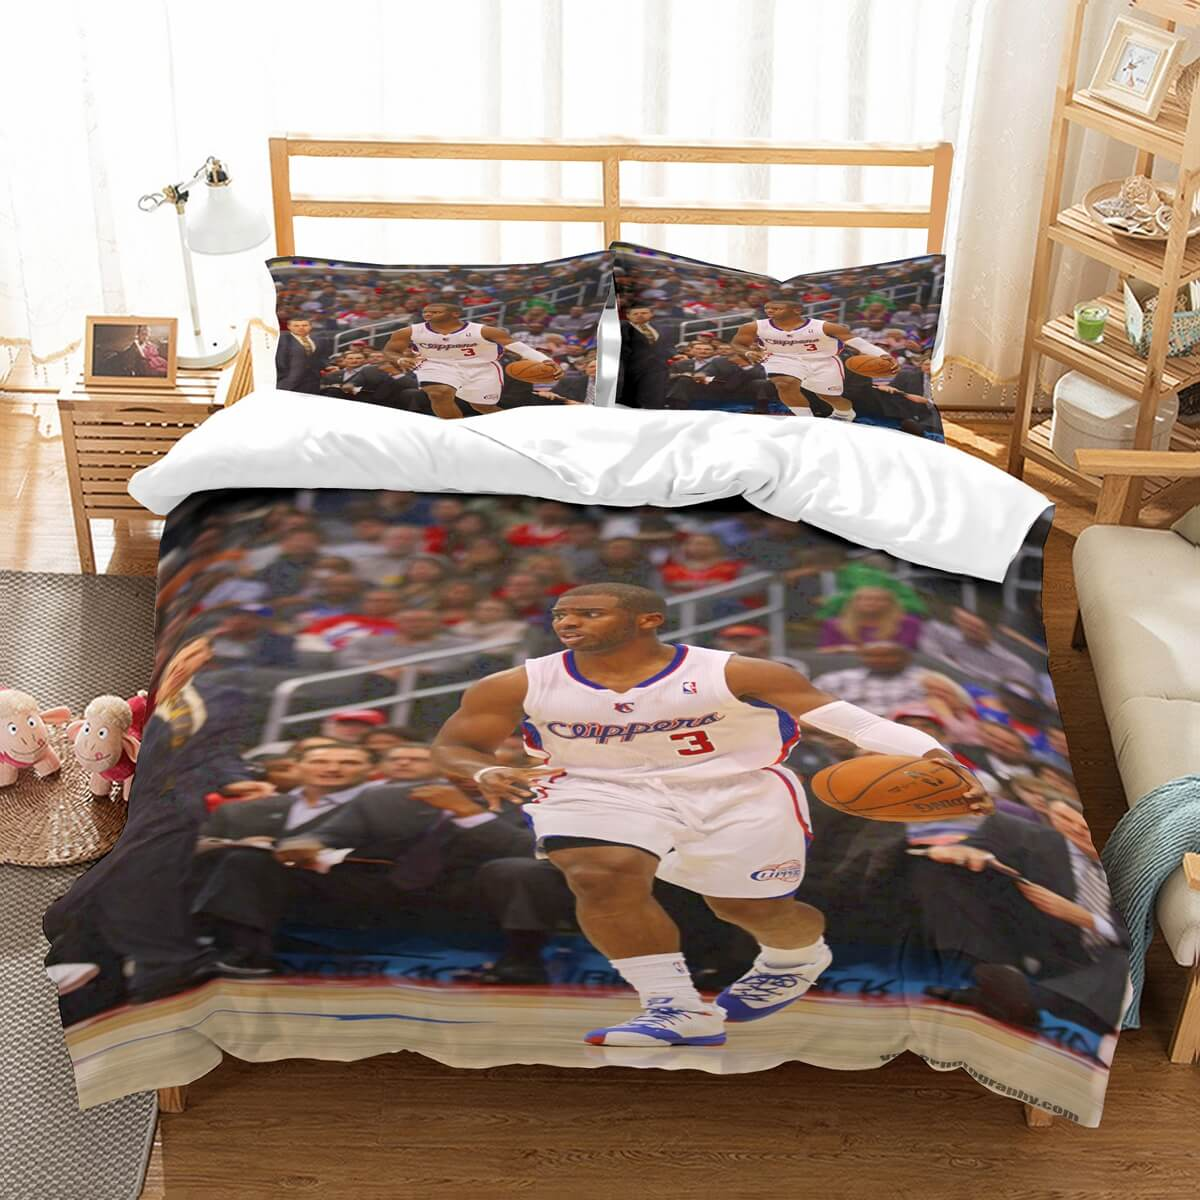 3D Customize Chris Paul Bedding Set Duvet Cover Set Bedroom Set Bedlinen